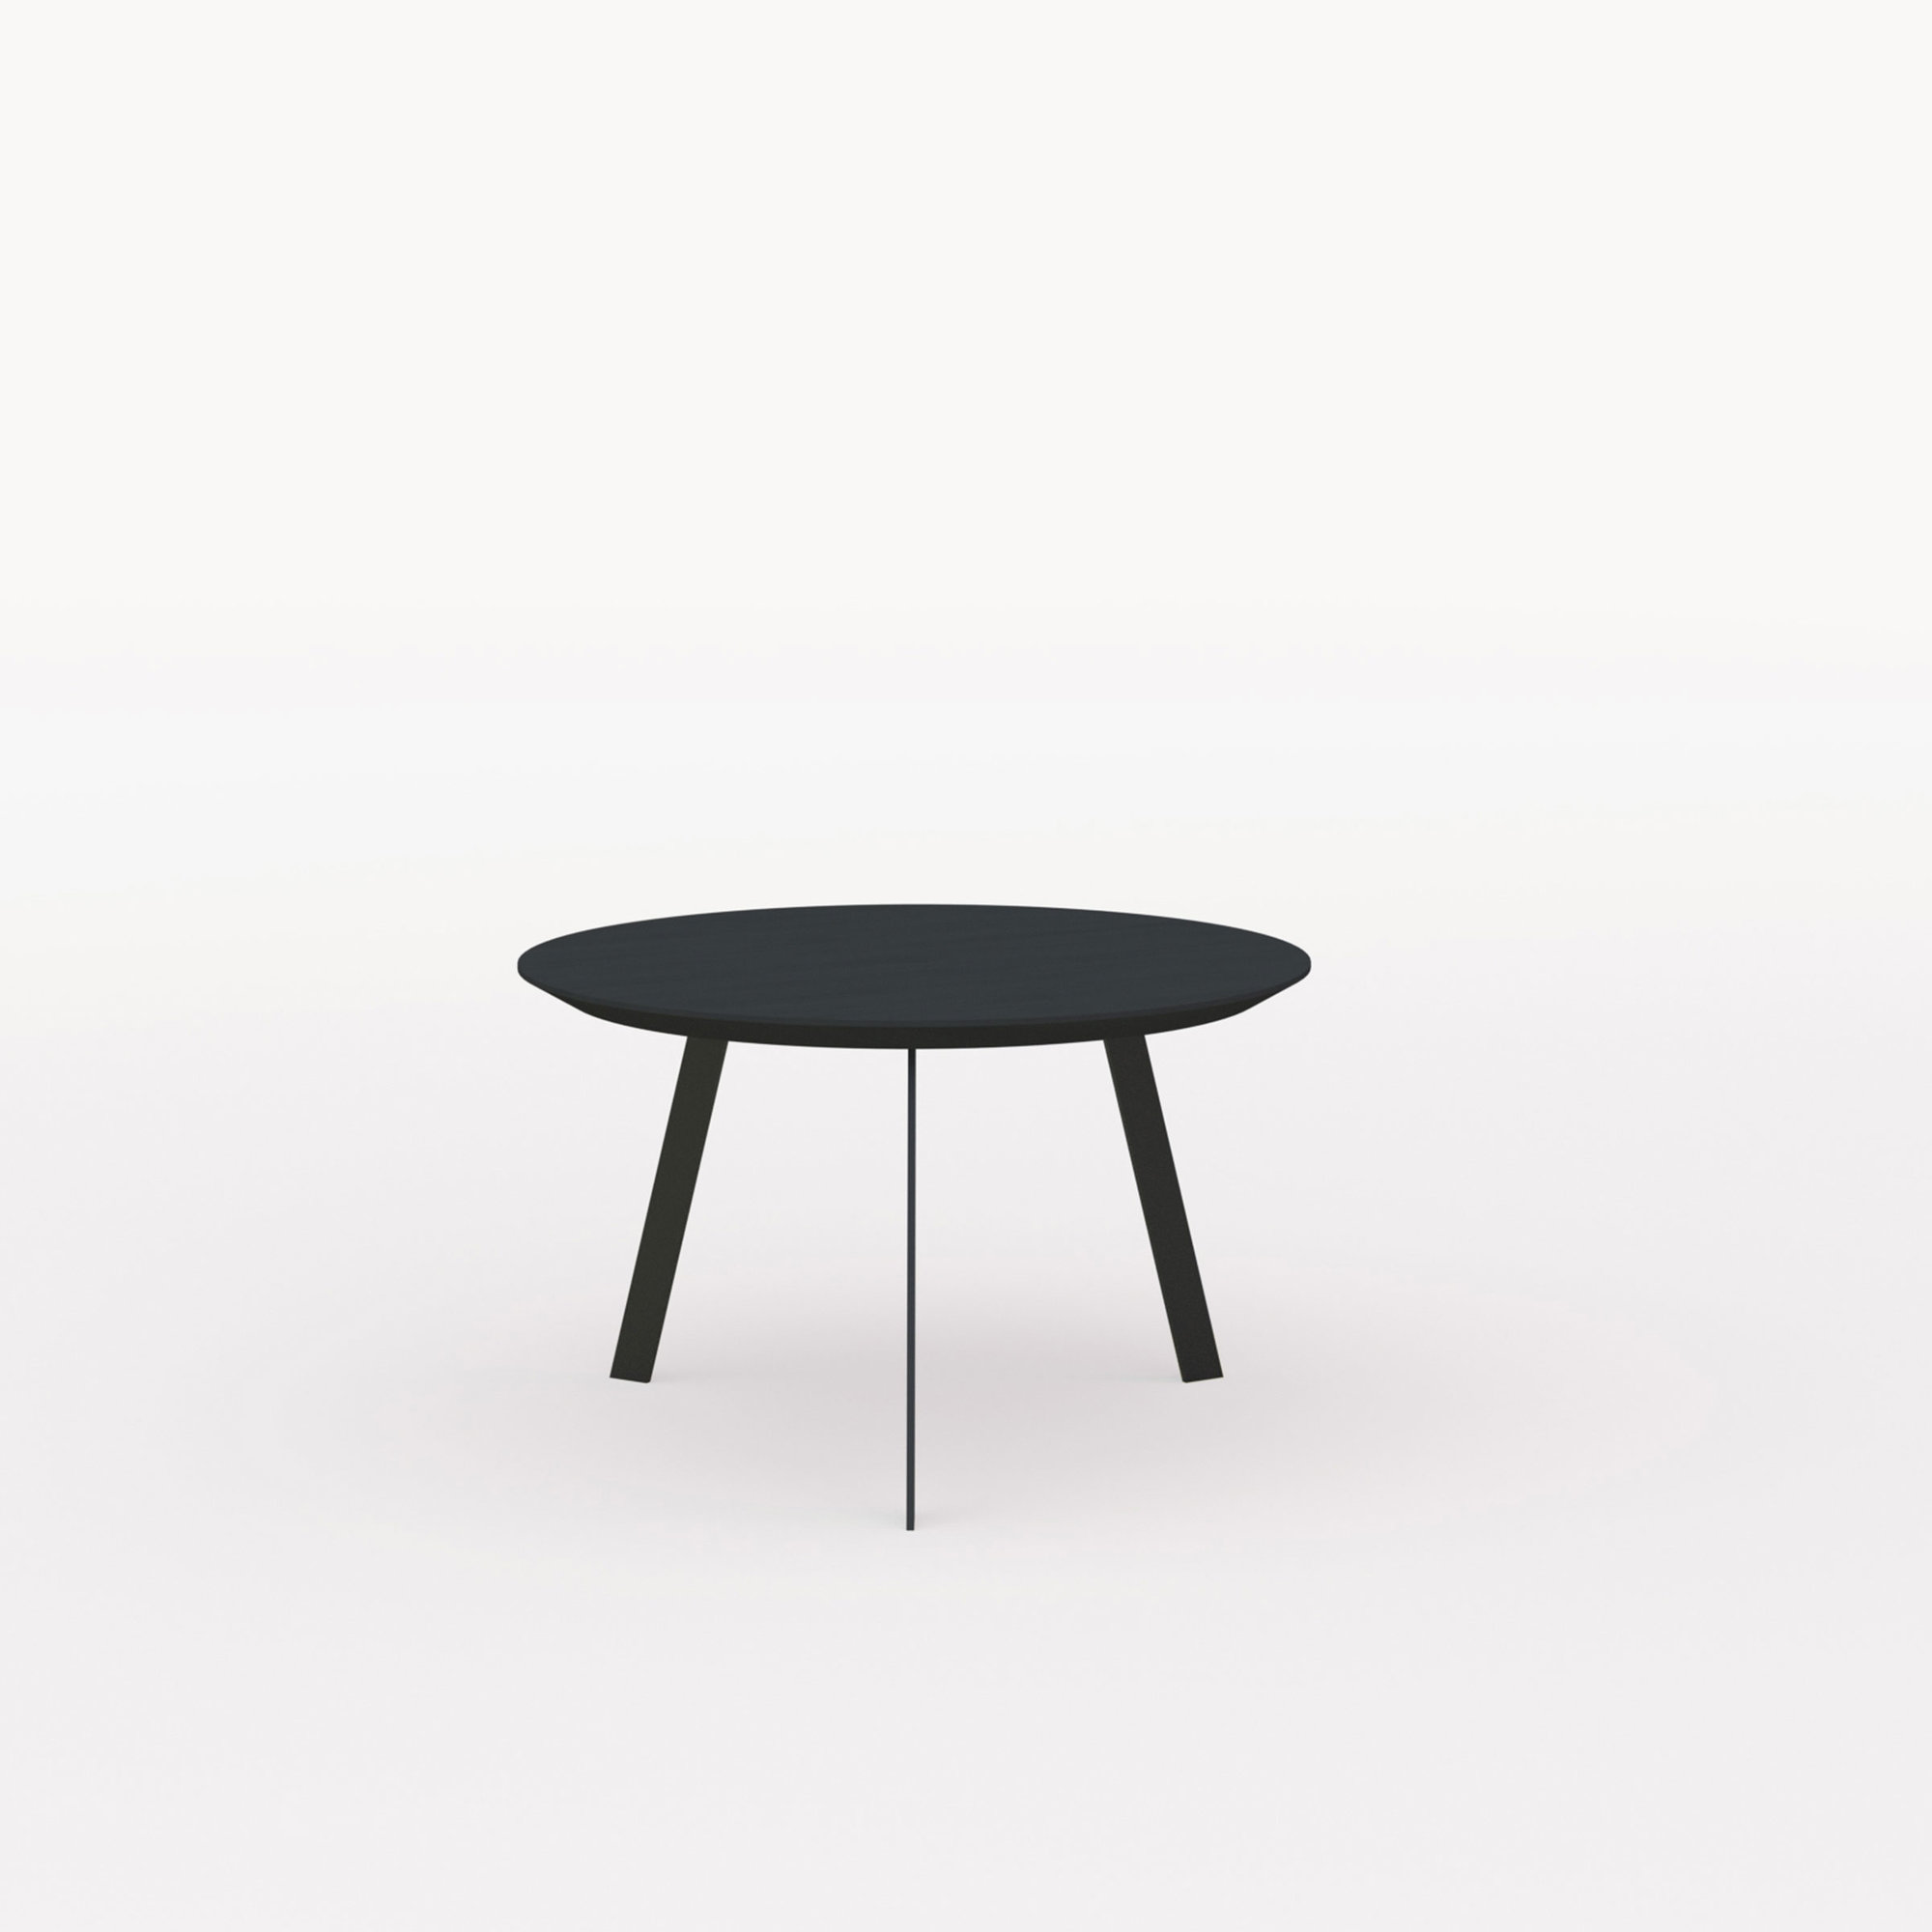 Design salontafel | New Co Coffee Table 70 Round Black | Oak black lacquer | Studio HENK | Listing_image